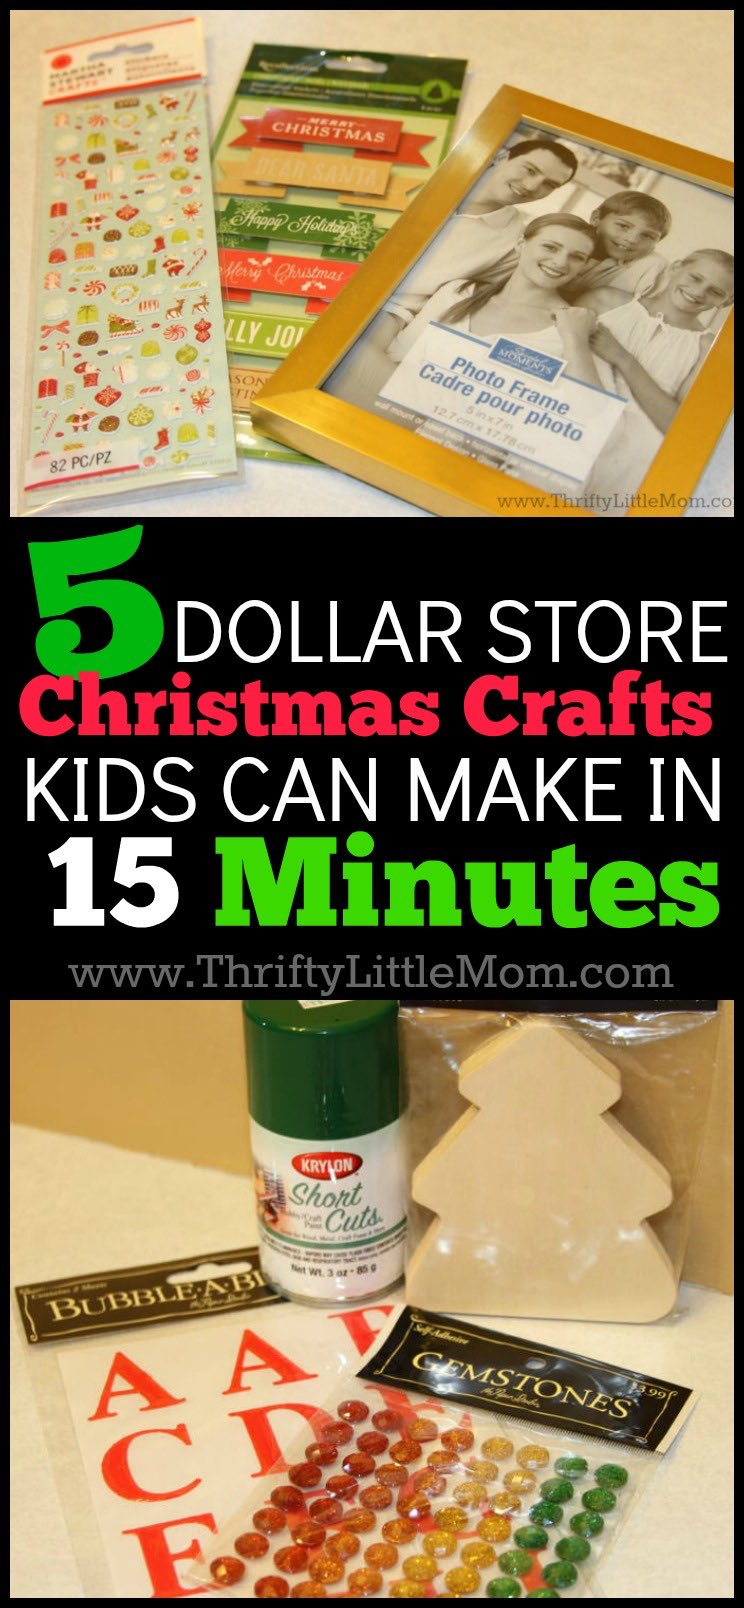 5 dollar store christmas crafts kids can make in 15 minutes - Dollar Store Christmas Crafts